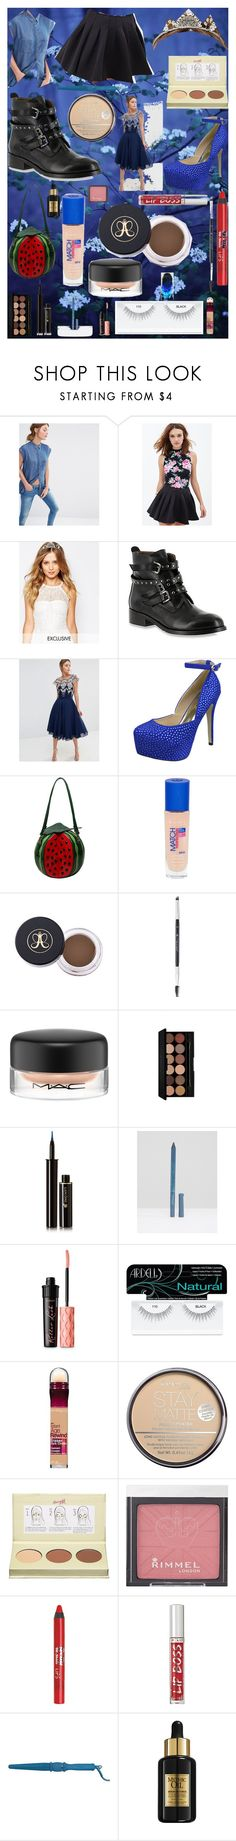 """""""GET THE LOOK: Evie #DisneyDescendants Makeup Hair & Outfits"""" by oroartye-1 on Polyvore featuring Oasis, Forever 21, Olivia the Wolf, Bella Vita, Chi Chi, Chicnova Fashion, Rimmel, Anastasia Beverly Hills, MAC Cosmetics and Lancôme"""